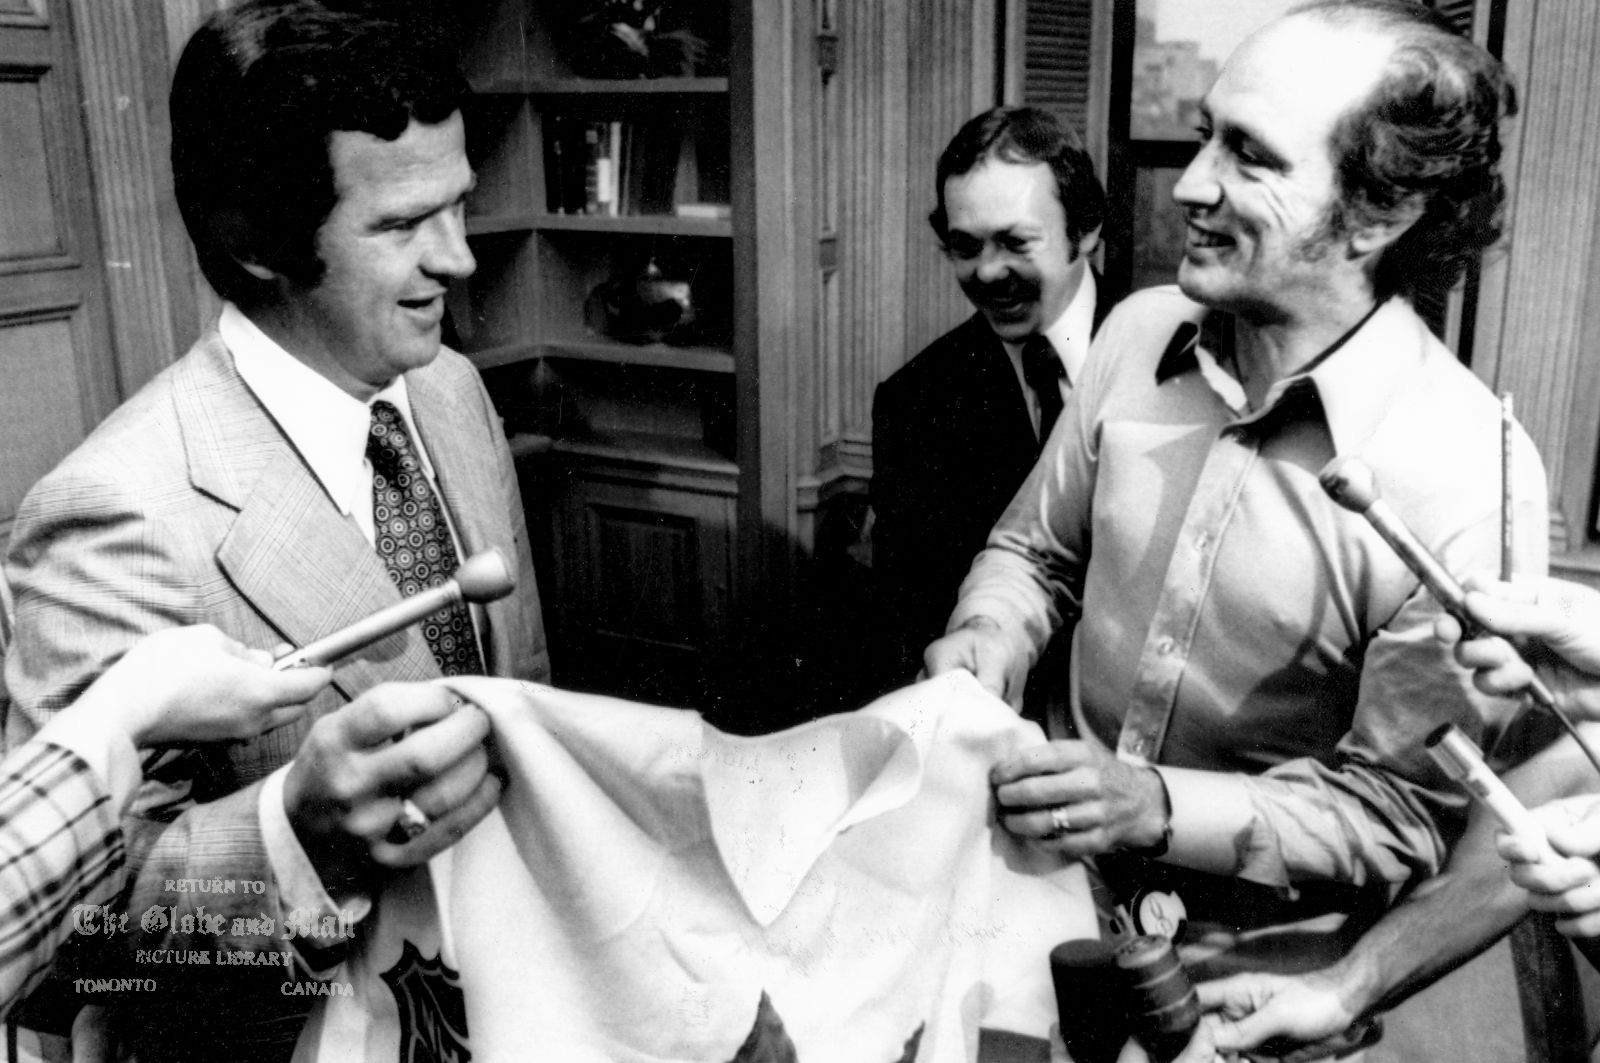 The notes transcribed from the back of this photograph are as follows: JULY 13, 1972 -- OTTAWA -- WELCOME TO THE TEAM -- Prime Minister Pierre Trudeau accepts a Team Canada jersey from manager-coach Harry Sinden at a meeting on Parliament Hill, Thursday, July 13, 1972. Team member Yvan Cournoyer of the Montreal Canadiens looks on. The team, comprised of NHL hockey players will compete in an eight-game series against the Russian national team beginning Sept. 2, 1972 in Montreal. CP PHOTO Originally published July 14, 1972.